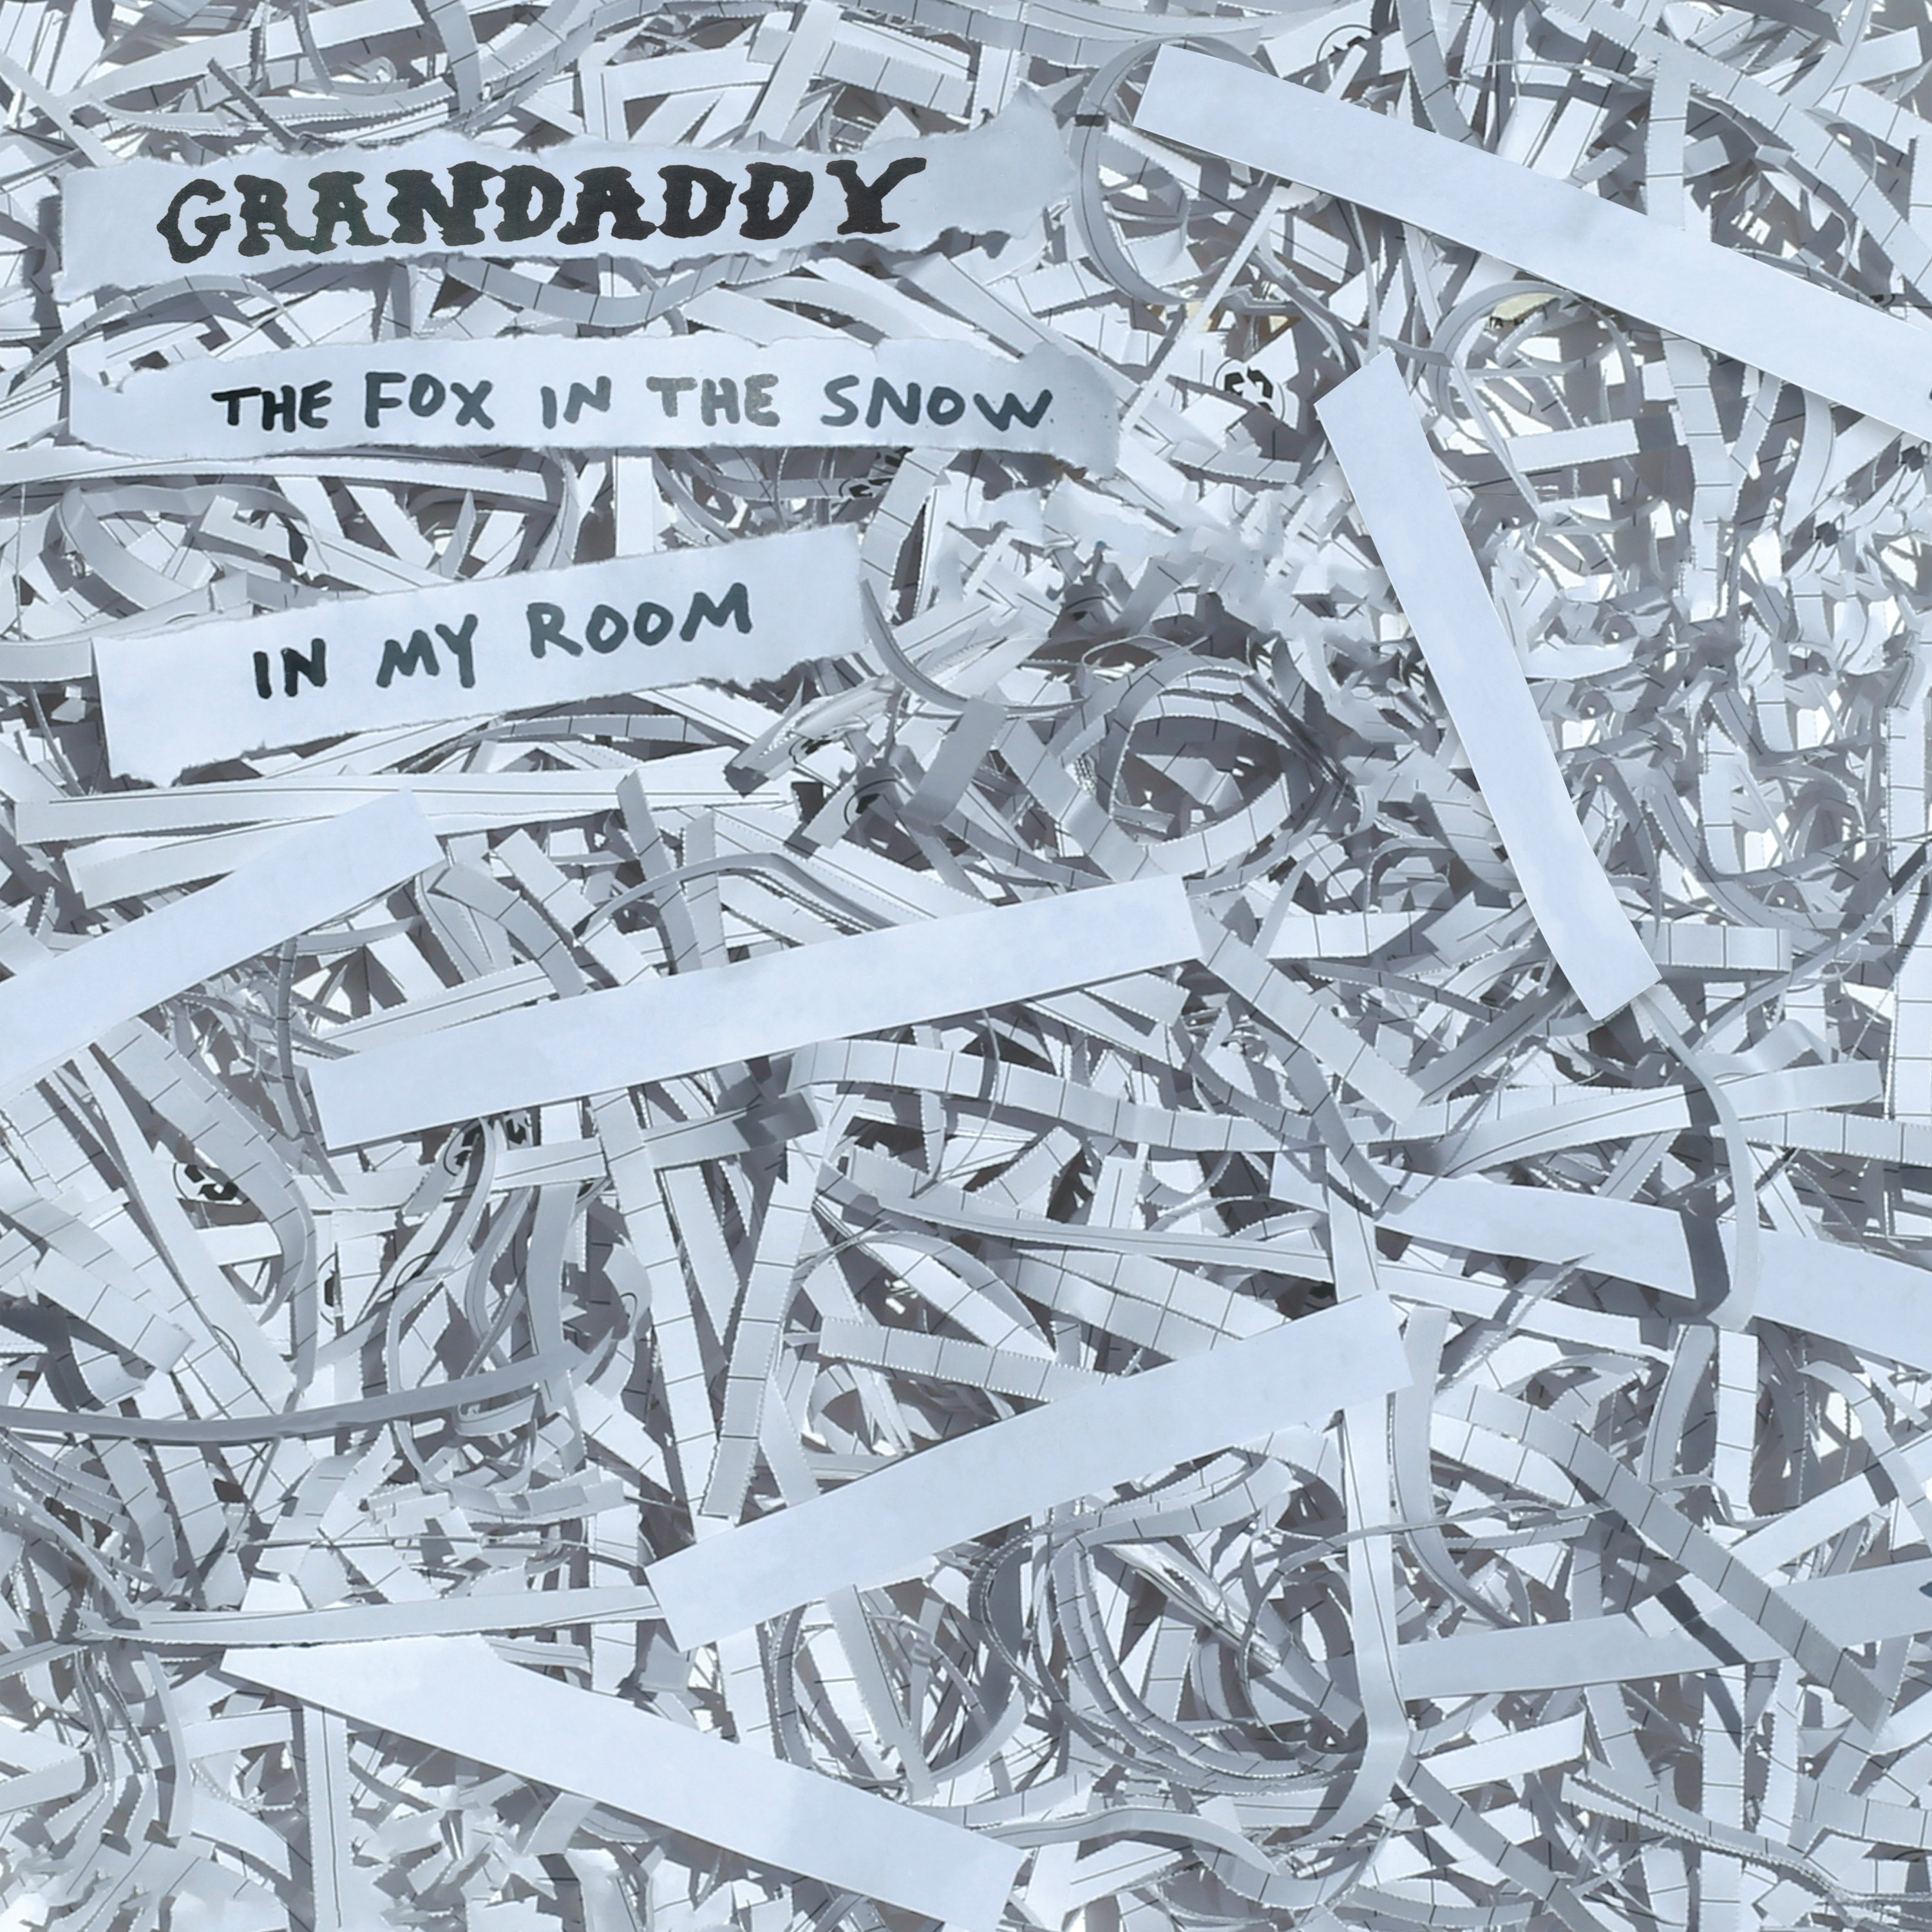 Grandaddy - 2020's Over Covers - Digital